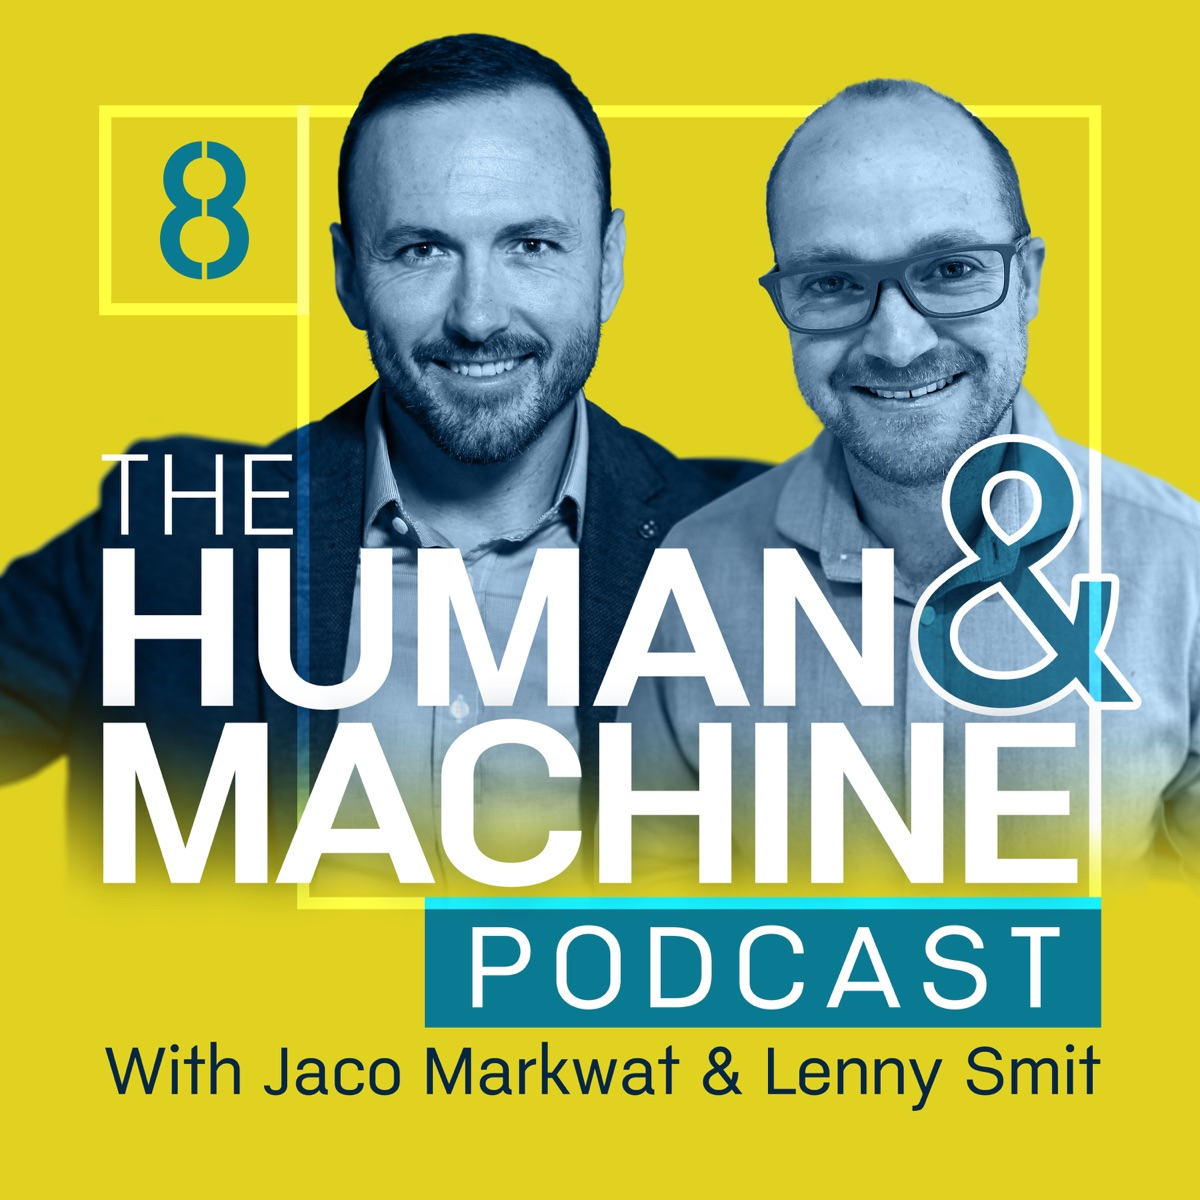 The Human and Machine Podcast